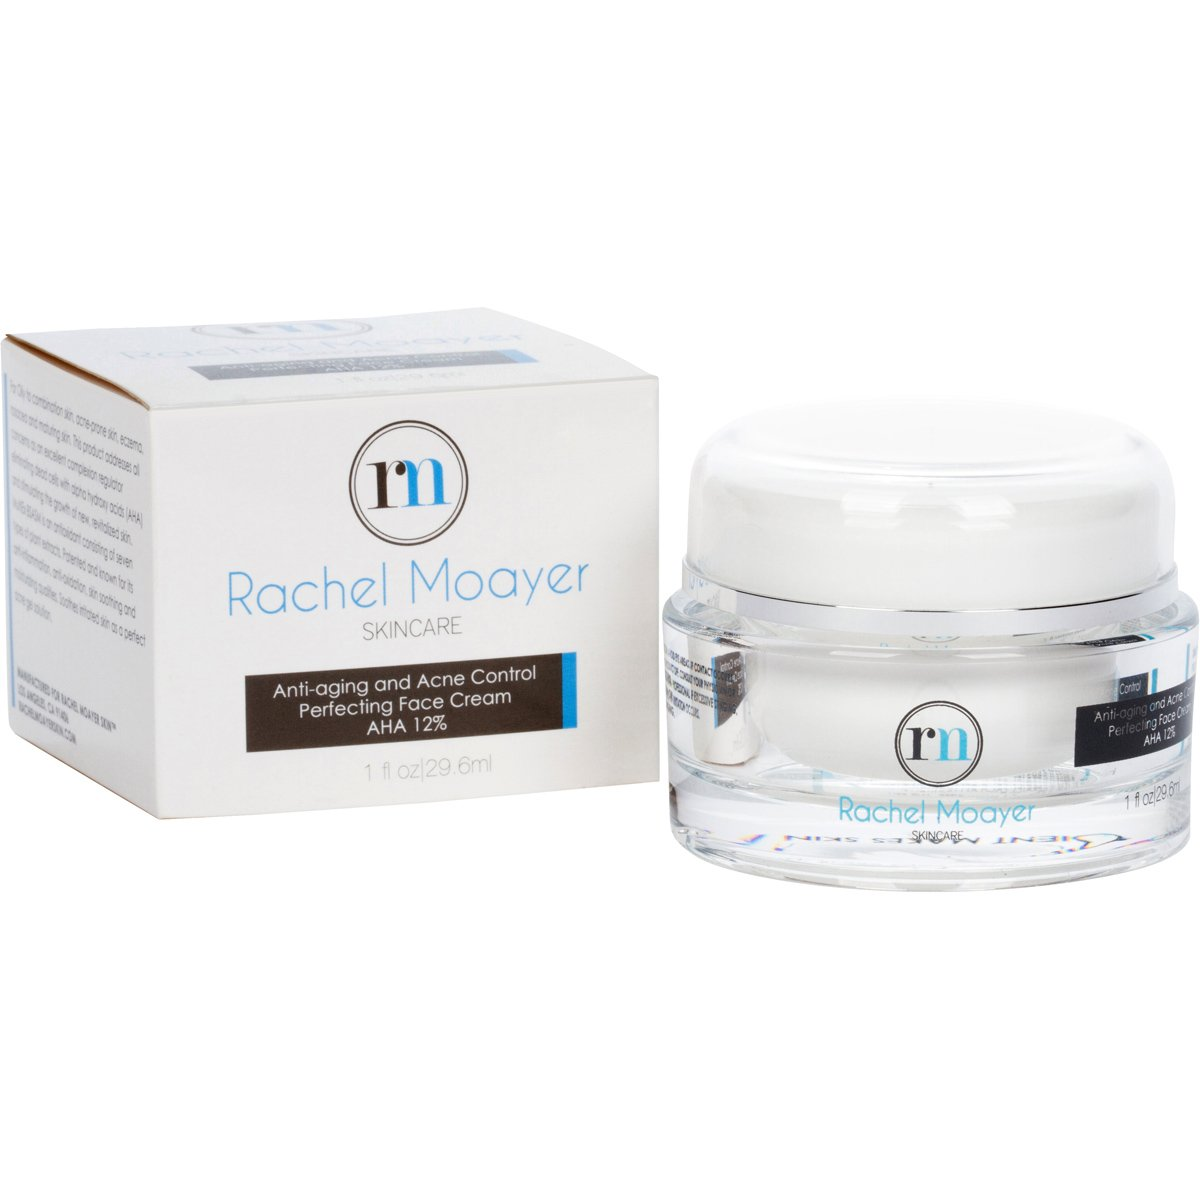 RM Anti-aging and Acne Control Perfecting Face Cream AHA 12%. Contains peptides that help produce collagen for anti-aging and hydrating qualities by Rachel Moayer Skin